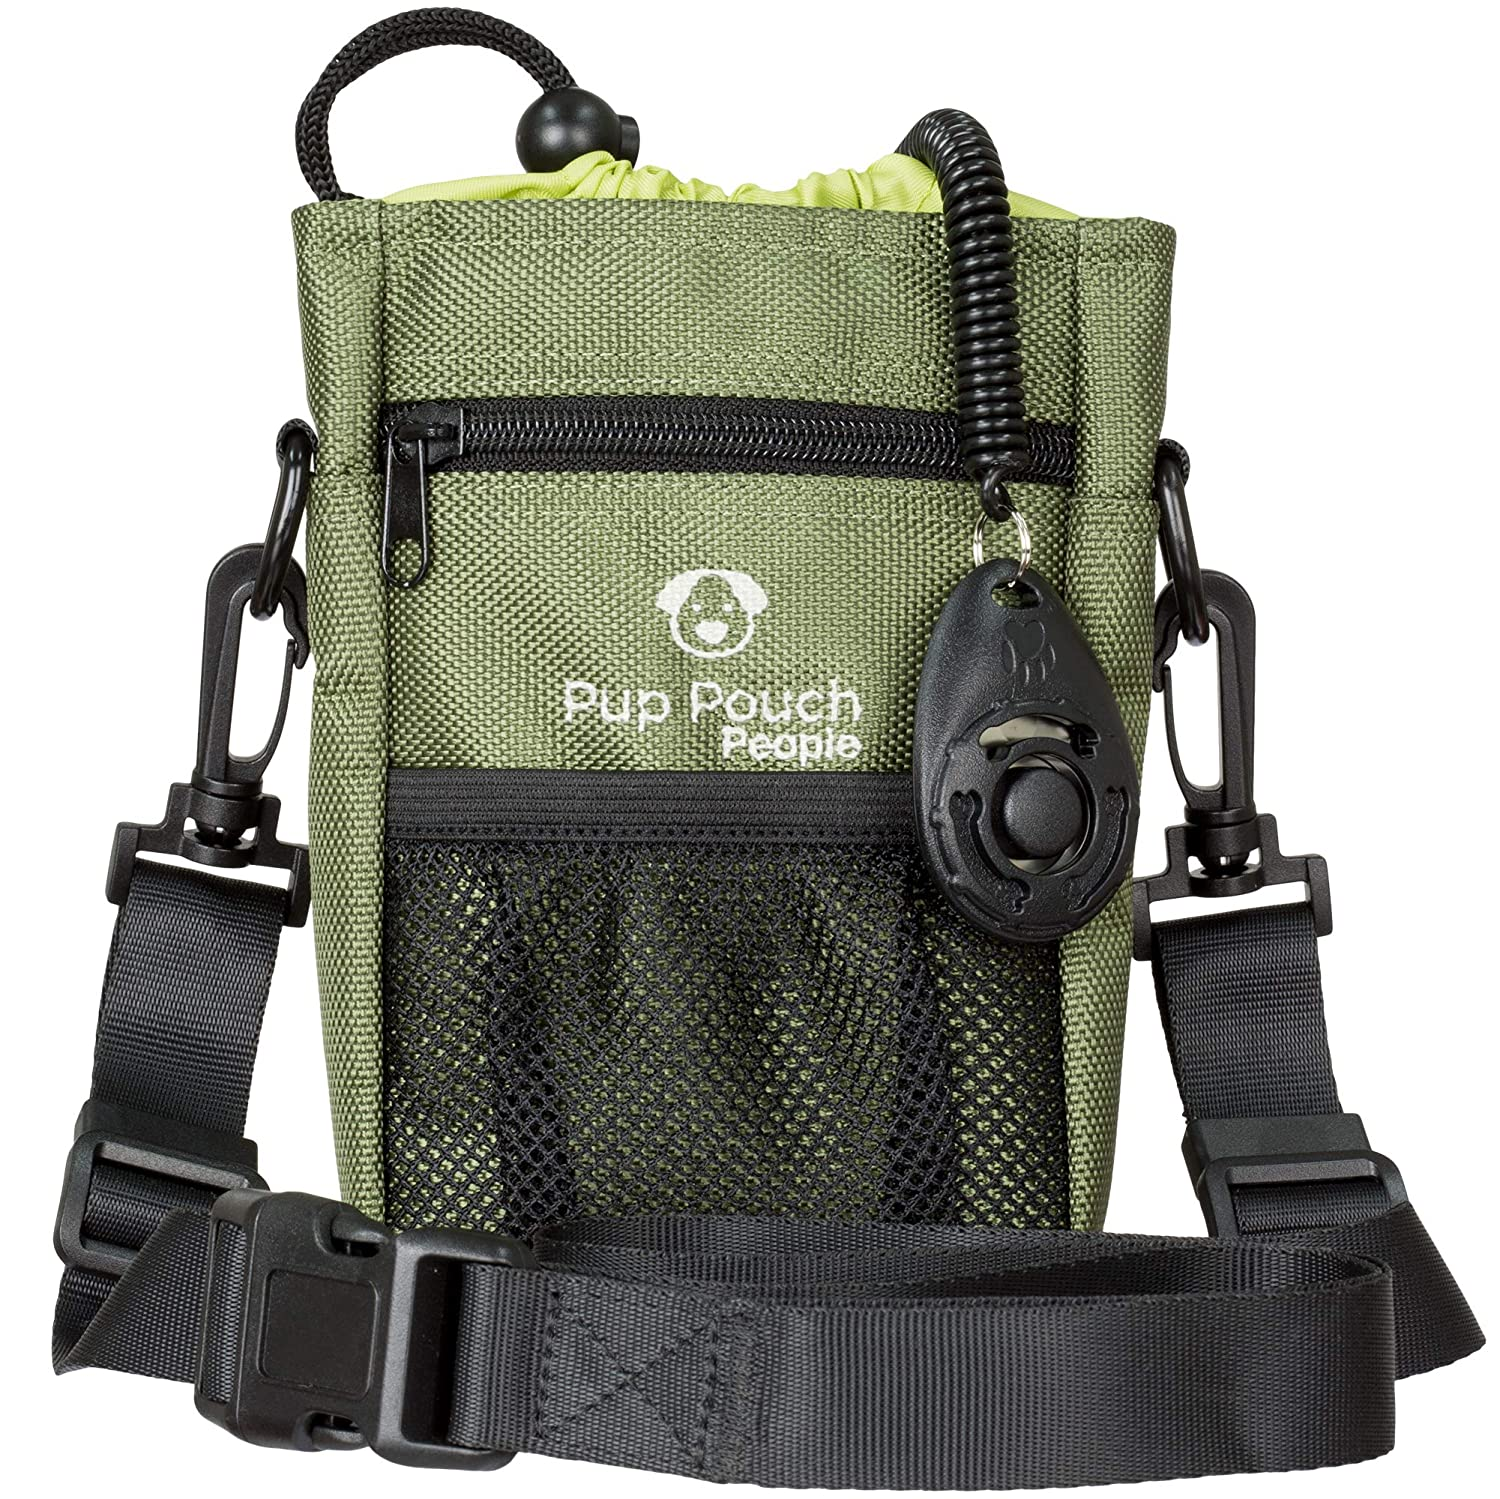 Dog Clicker Treat Walking Training Pouch Bag Bonus Clicker Trainer - Built-in Double Poop Bag Dispenser, Drawstring Closure - Carries Balls, Toys, Treats - 3 Ways to Wear - Olive Green Bloomberry Supply